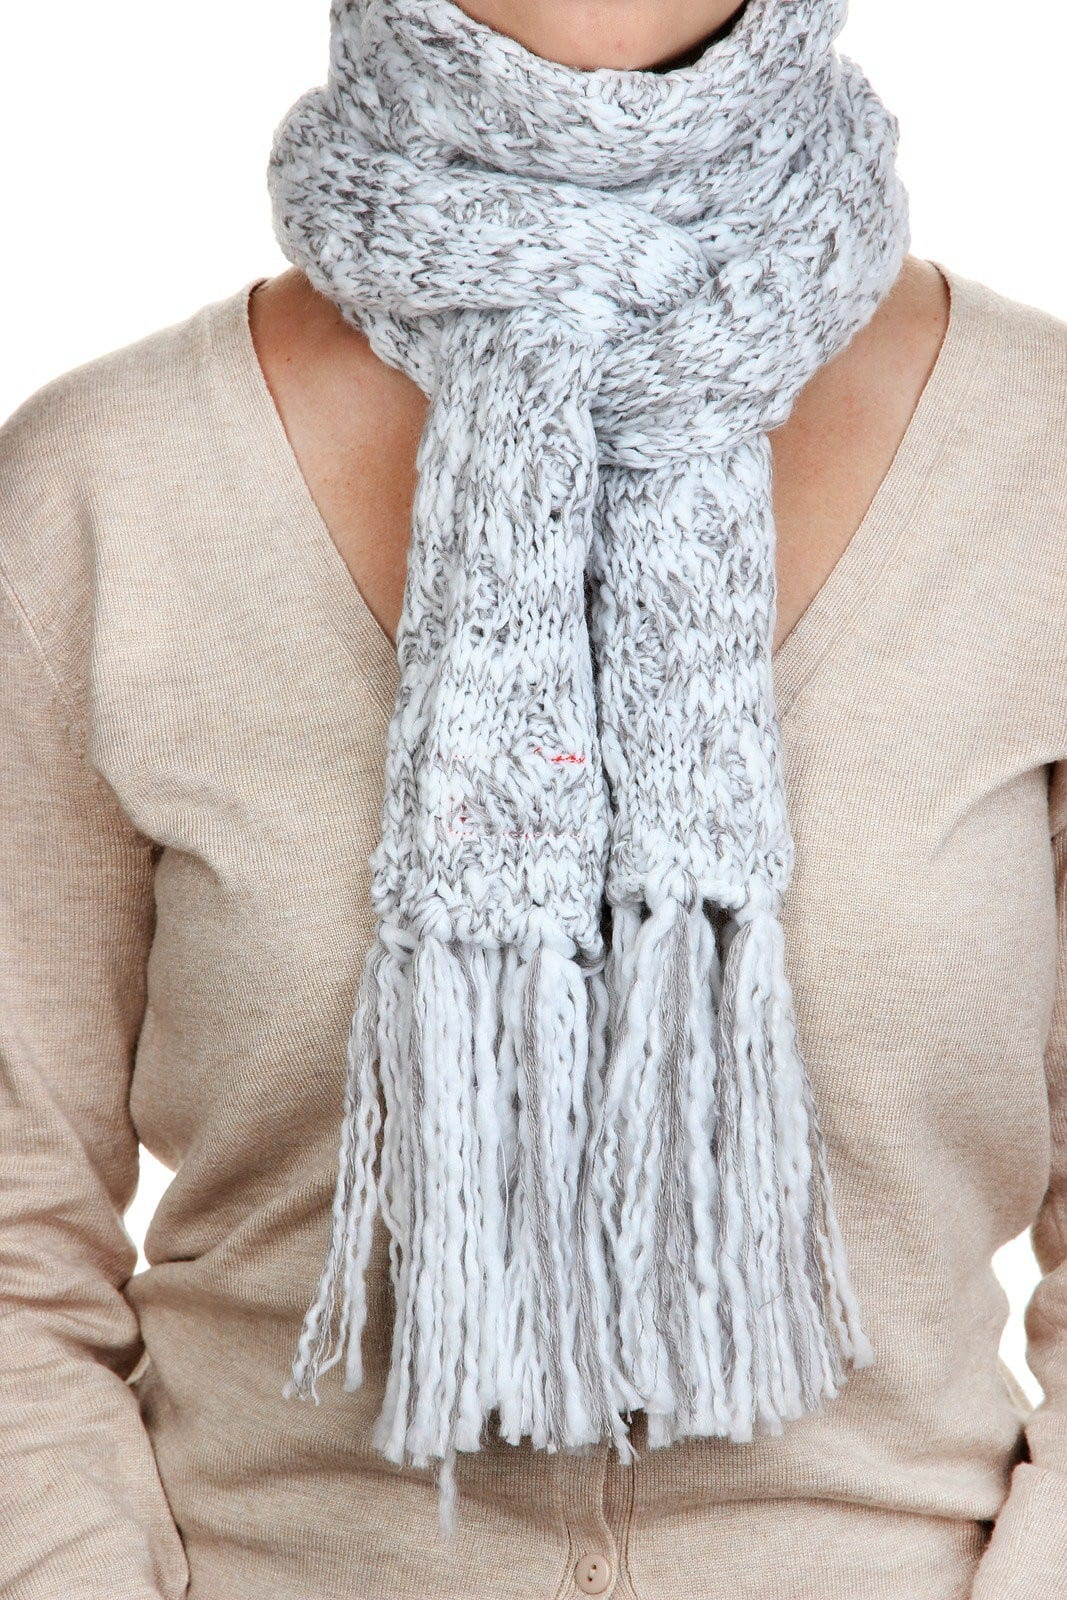 how to tie a fall scarf